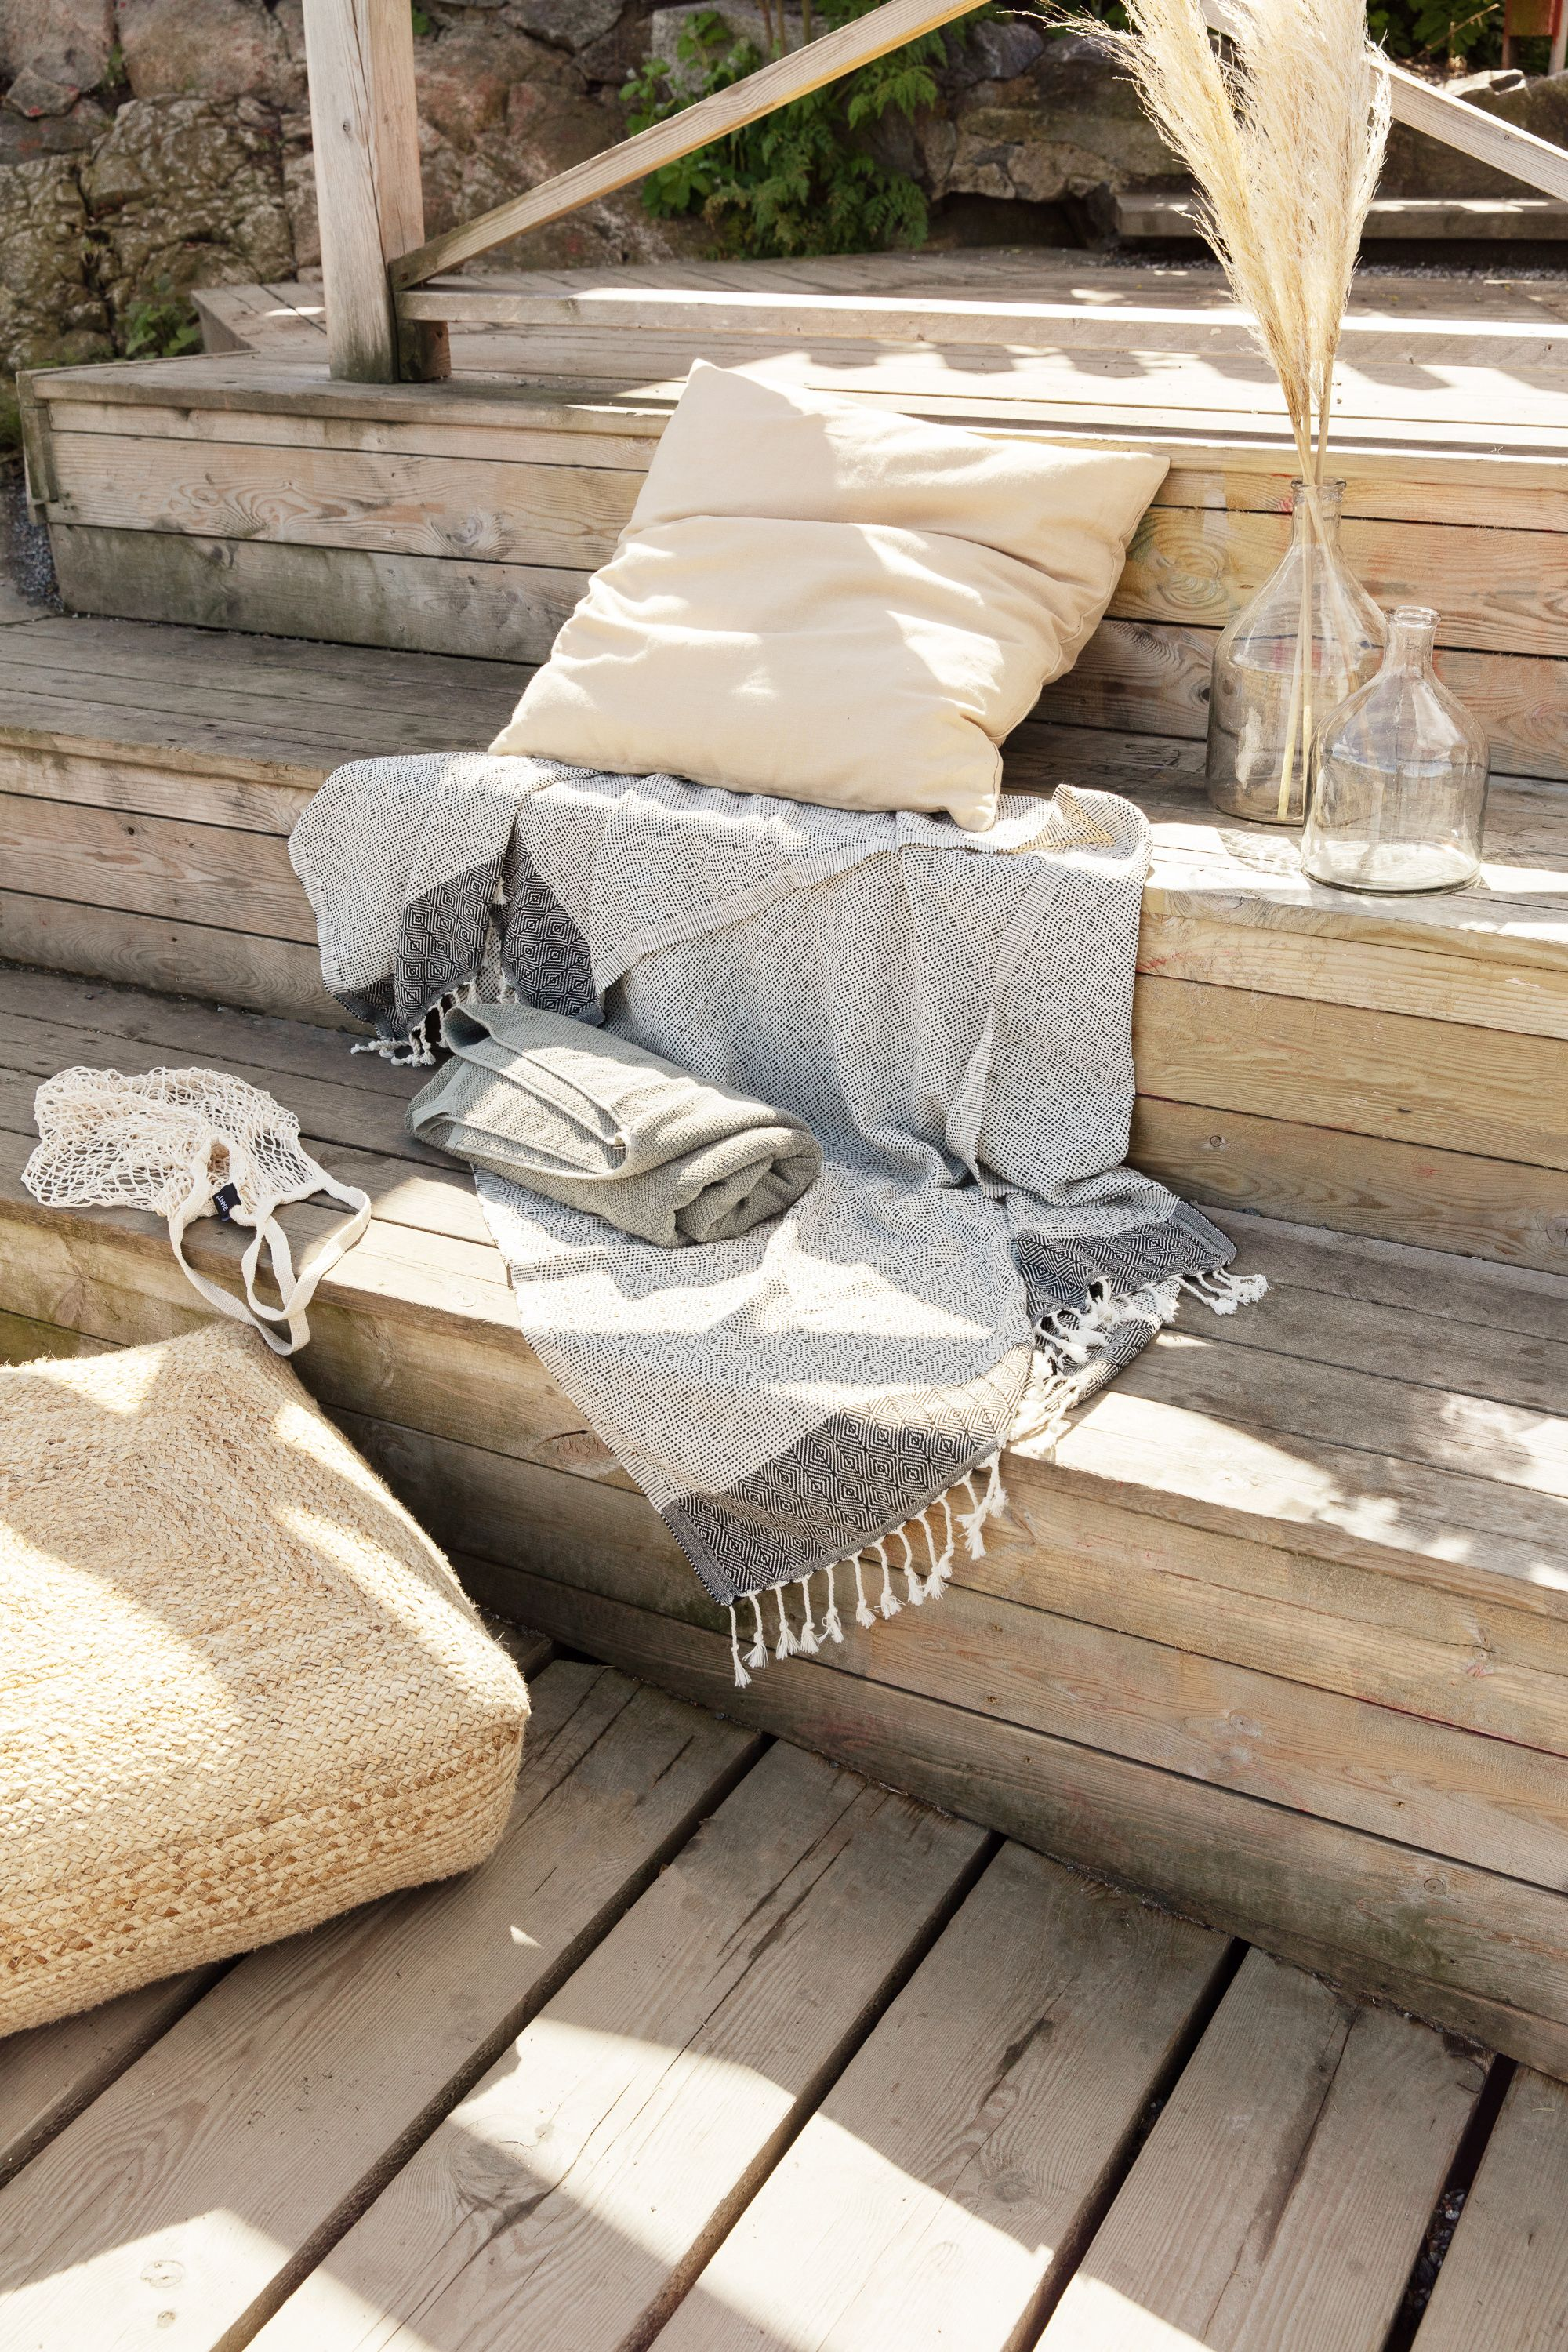 Lounge Kissen 60x60 Finally, Time To Lounge On The Terrace Or The Pier. Soften Up A Hard Surface, Bring Out Our Hamam Towels, The New 60x60 Pillow And The Jute Pouf… | Bauwagen, Design